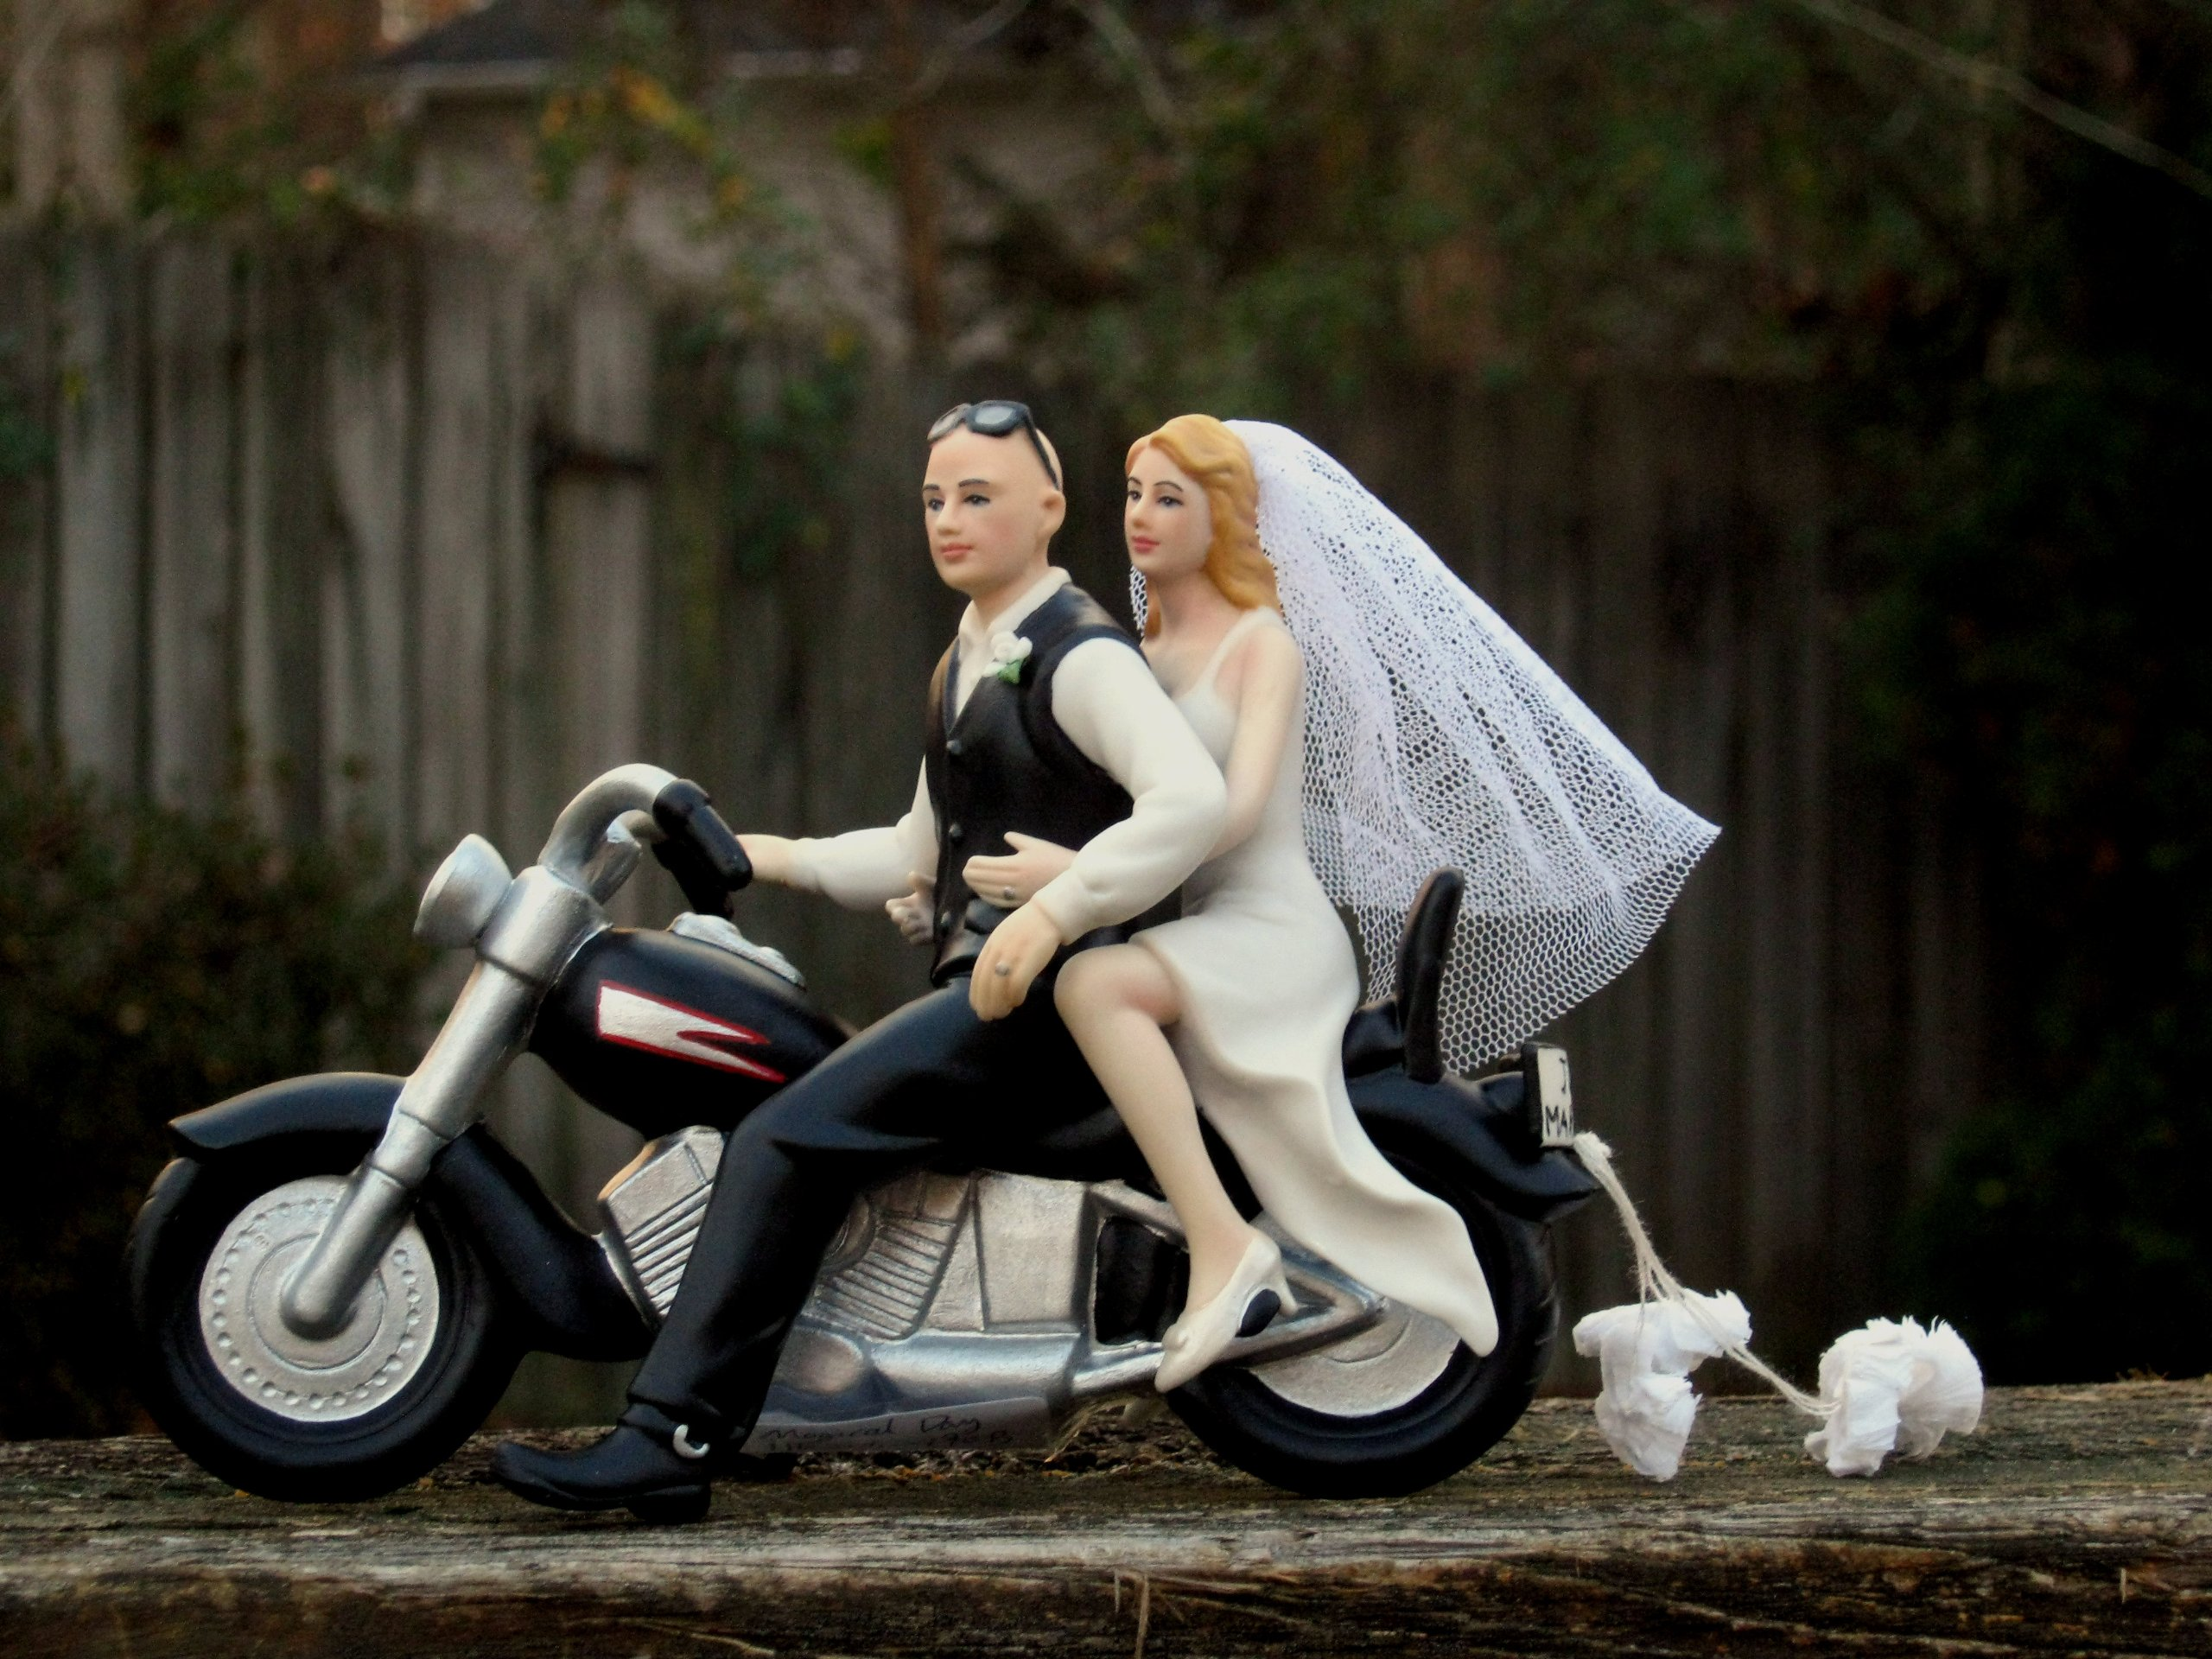 Motorcycle Cake Topper BALD Groom -- By Magical Day by Magical Day (Image #1)